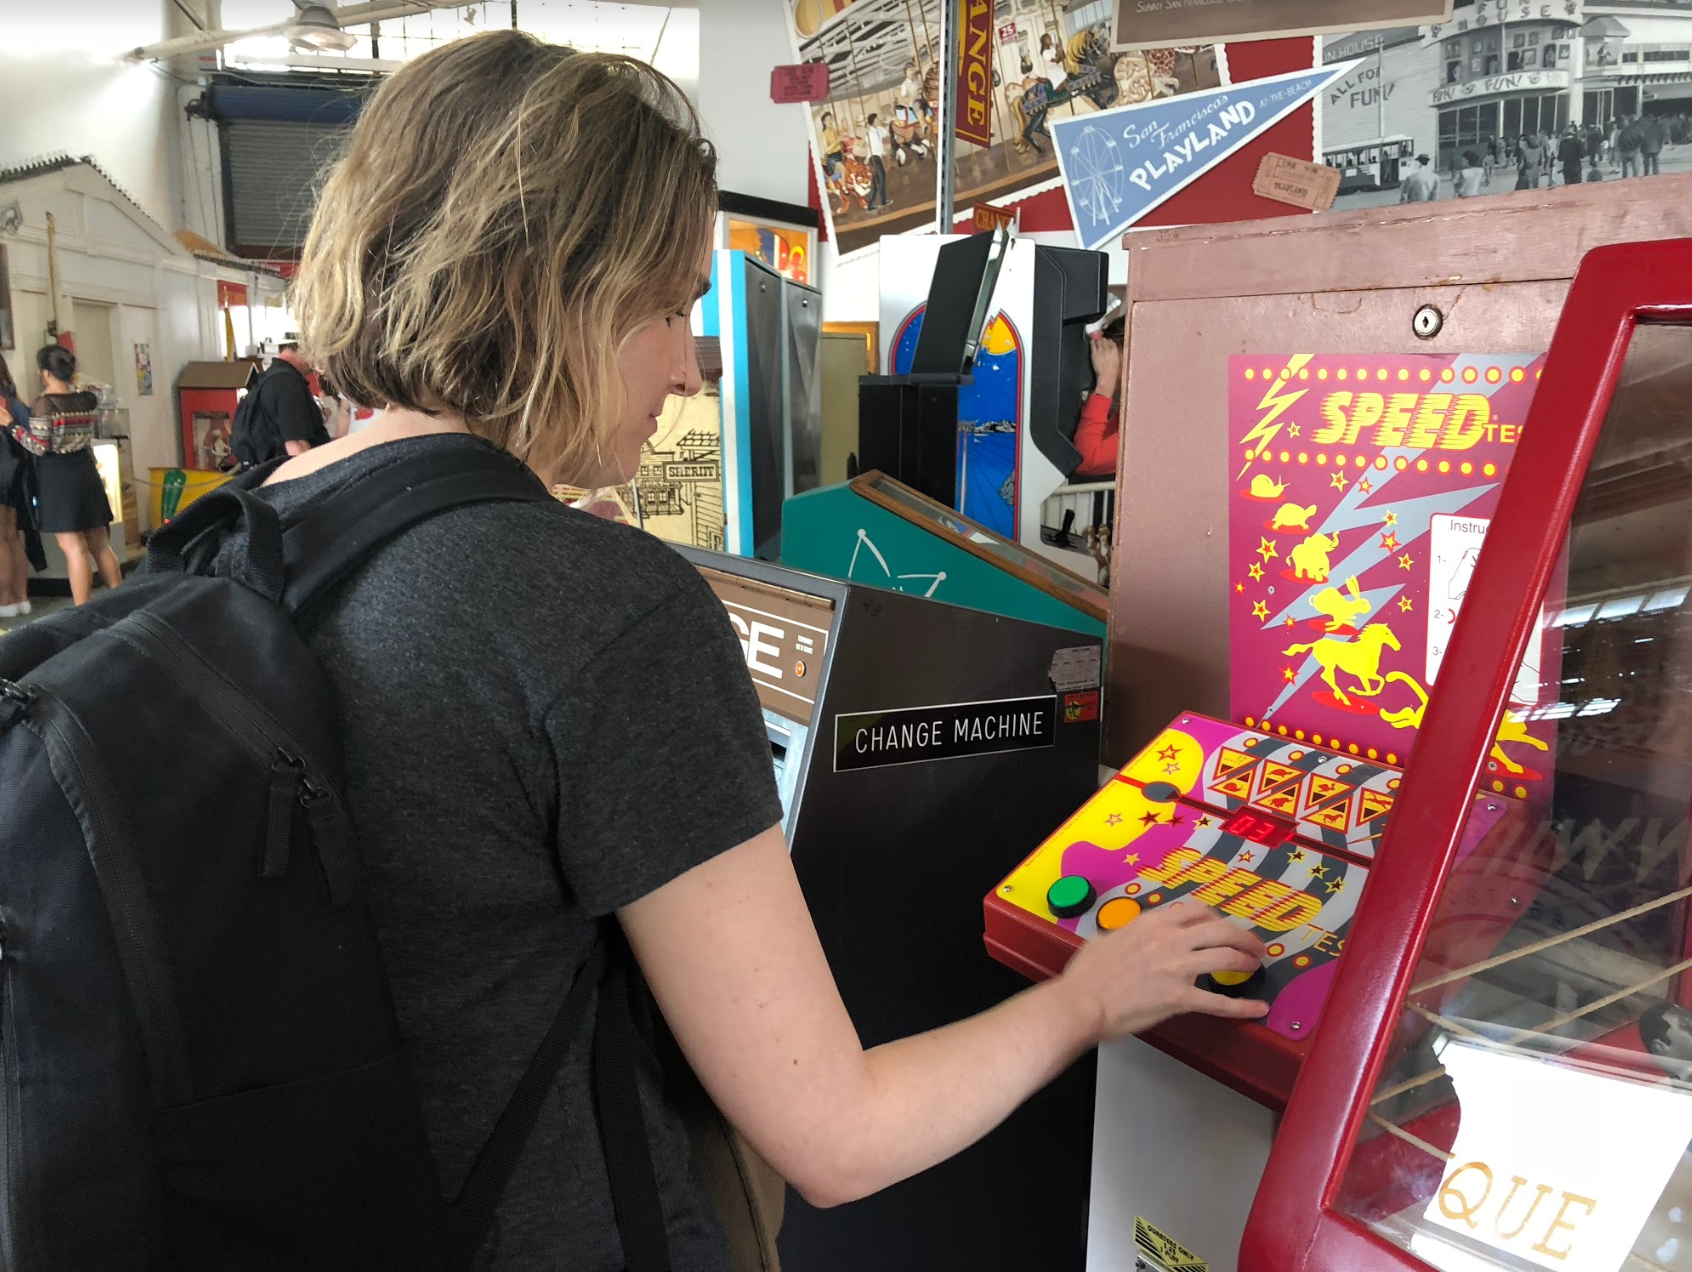 We spoke to collectors of all kinds, physical and digital, collections large and small. We visited a massive antique pinball machine collection in SF.